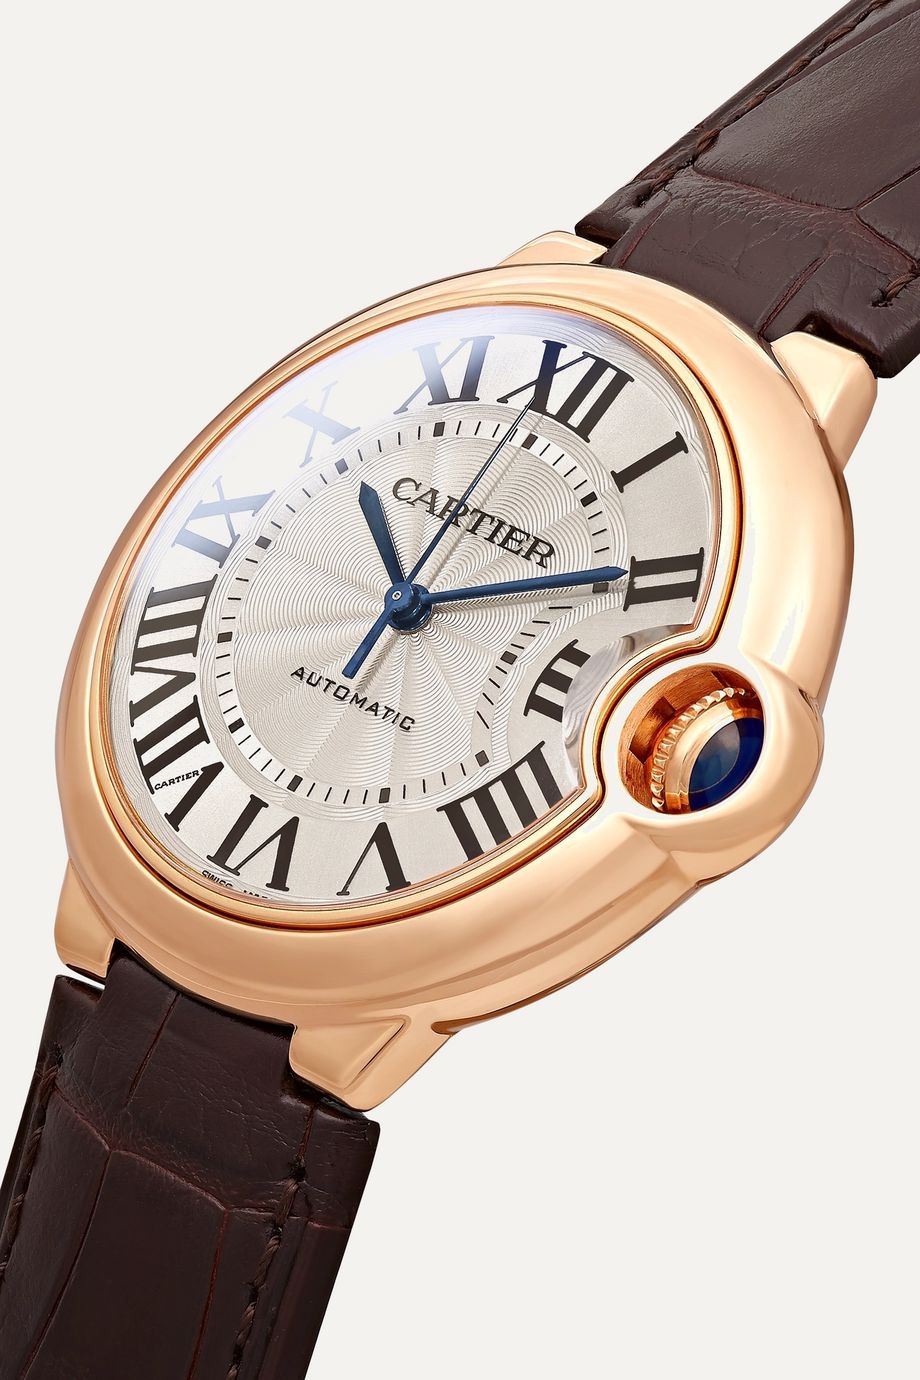 Cartier Montre en or rose 18 carats à bracelet en alligator Ballon Bleu de Cartier 36 mm